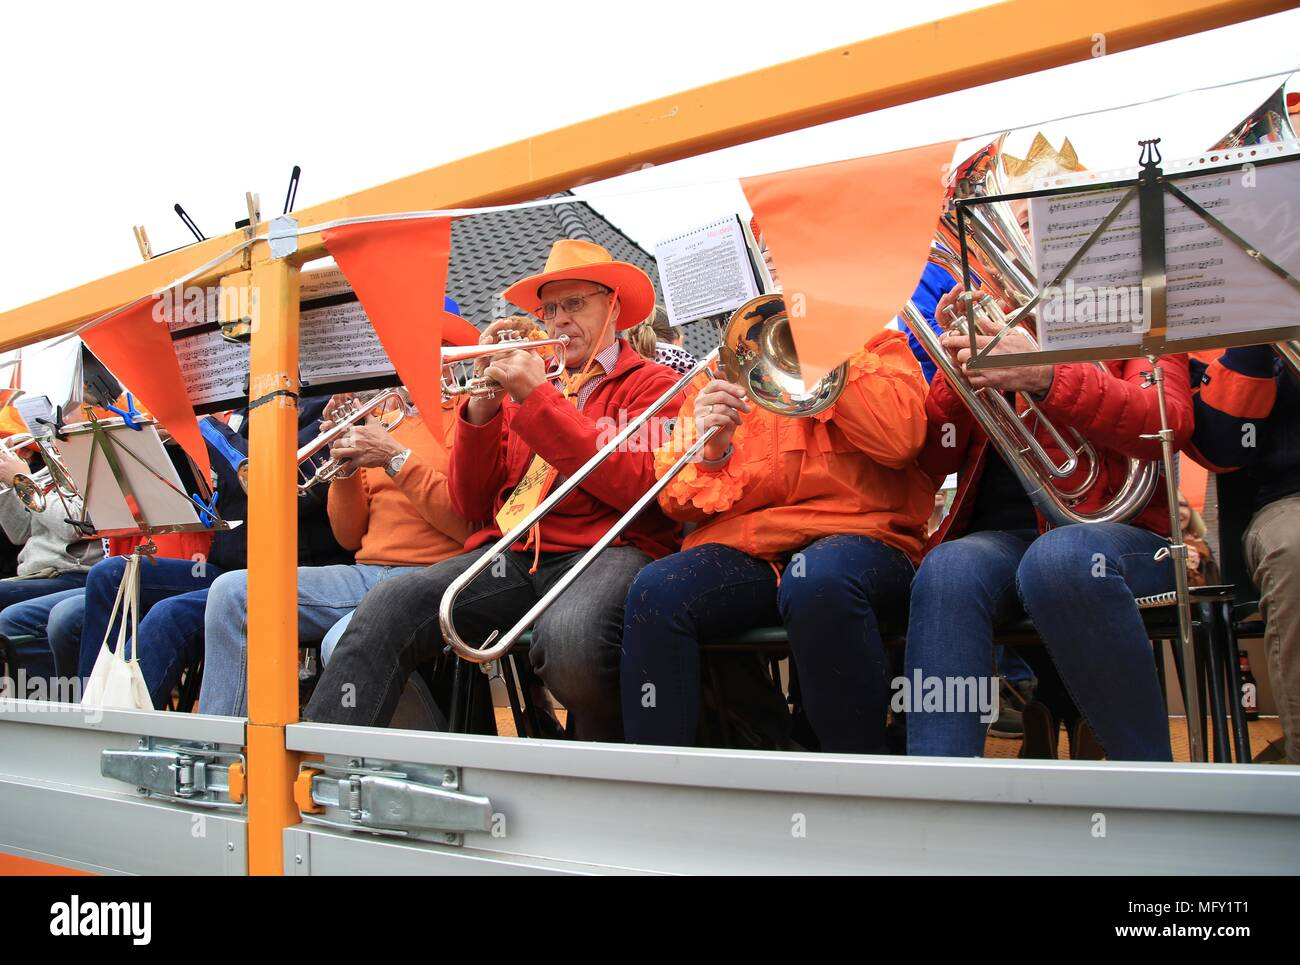 Tienhoven, Netherlands. 27th Apr, 2018. Kingsday Netherlands Tienhoven 27-04-2018  fanfare corps Credit: Catchlight Visual Services/Alamy Live News - Stock Image